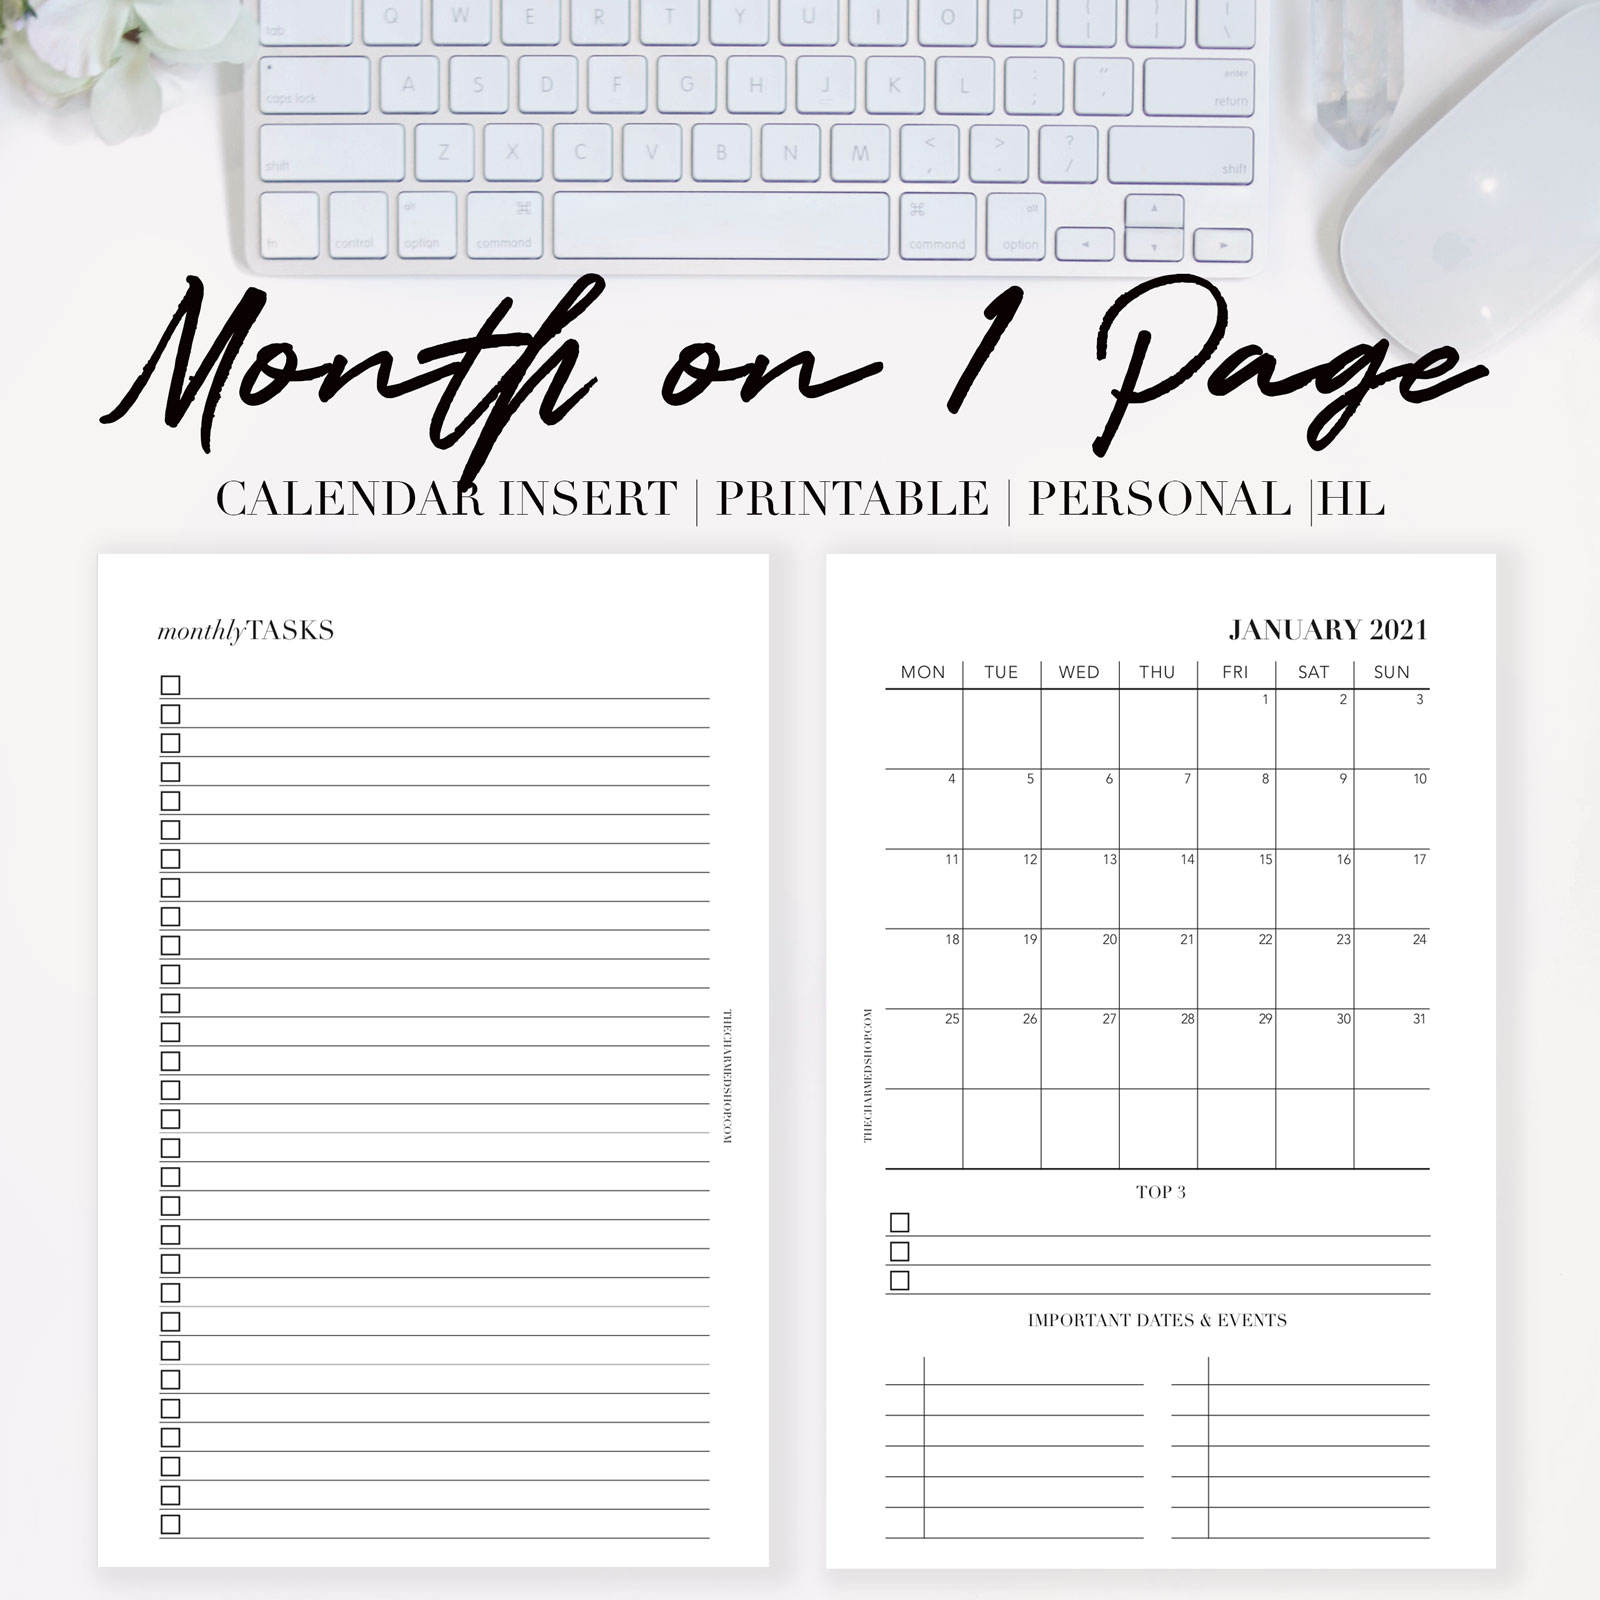 2021 Month on One Page Calendar {Printable PDF} - The ...